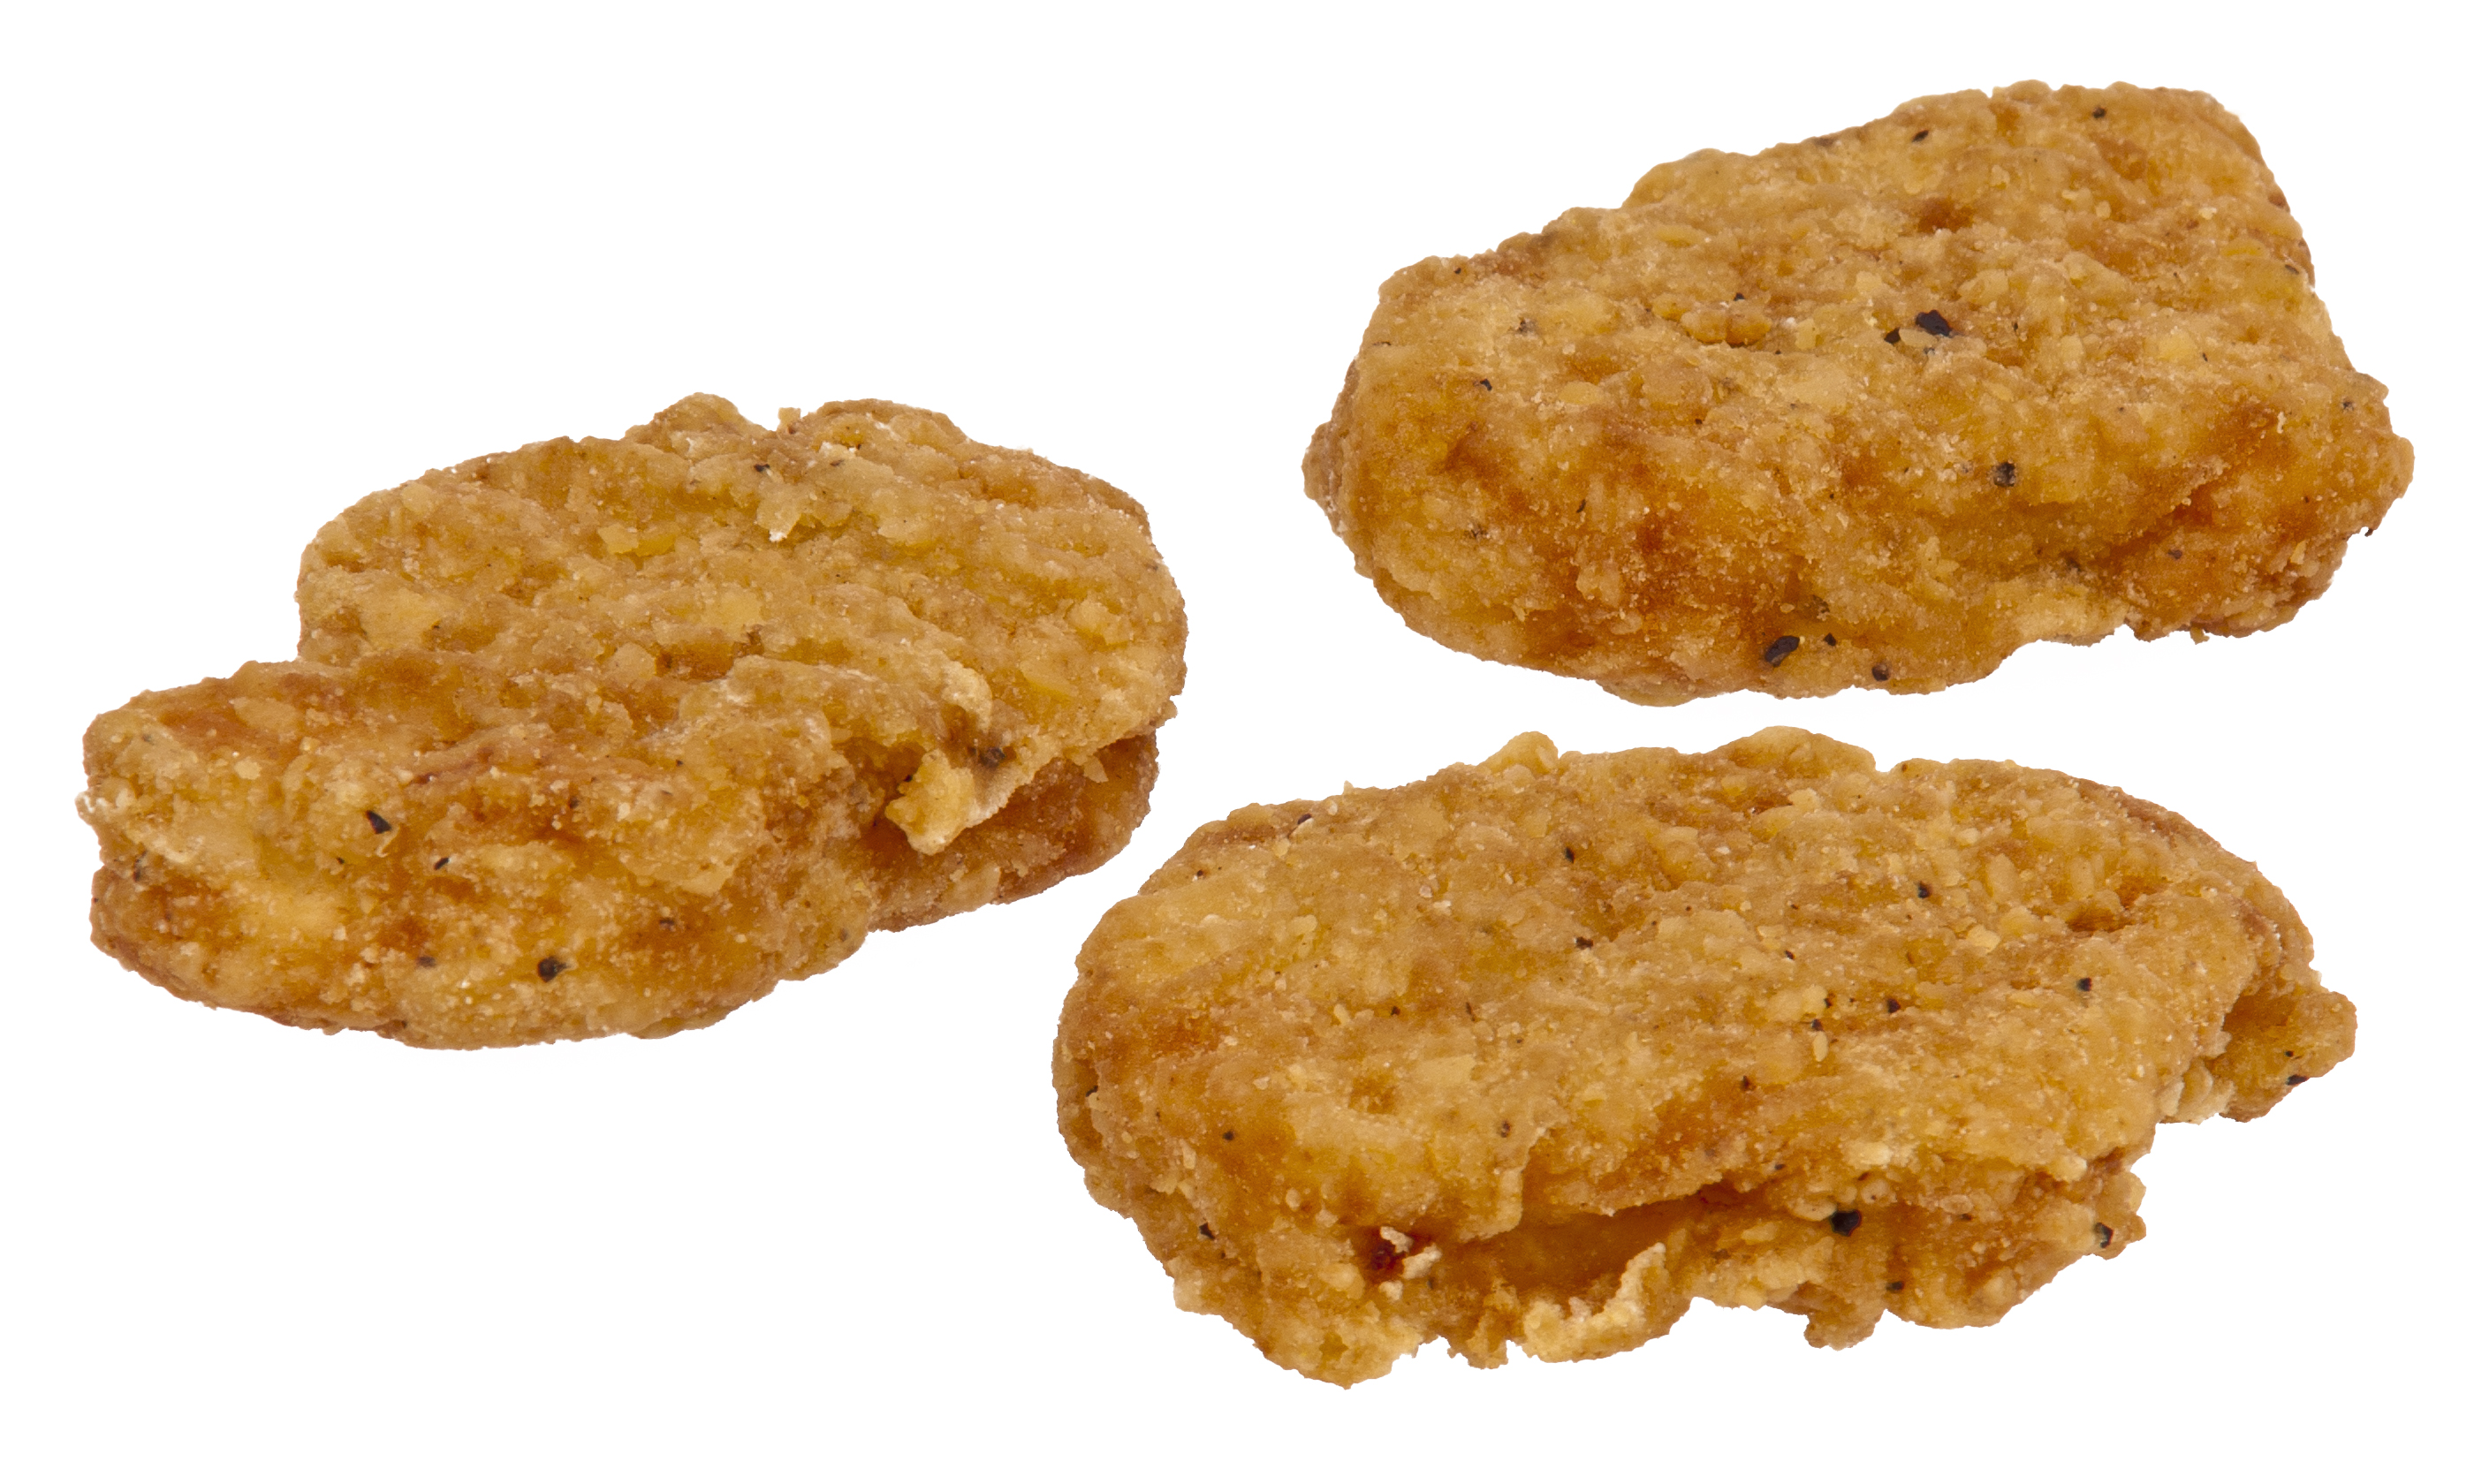 graphic about Bk Printable Application titled Burger King bird nuggets - Wikipedia